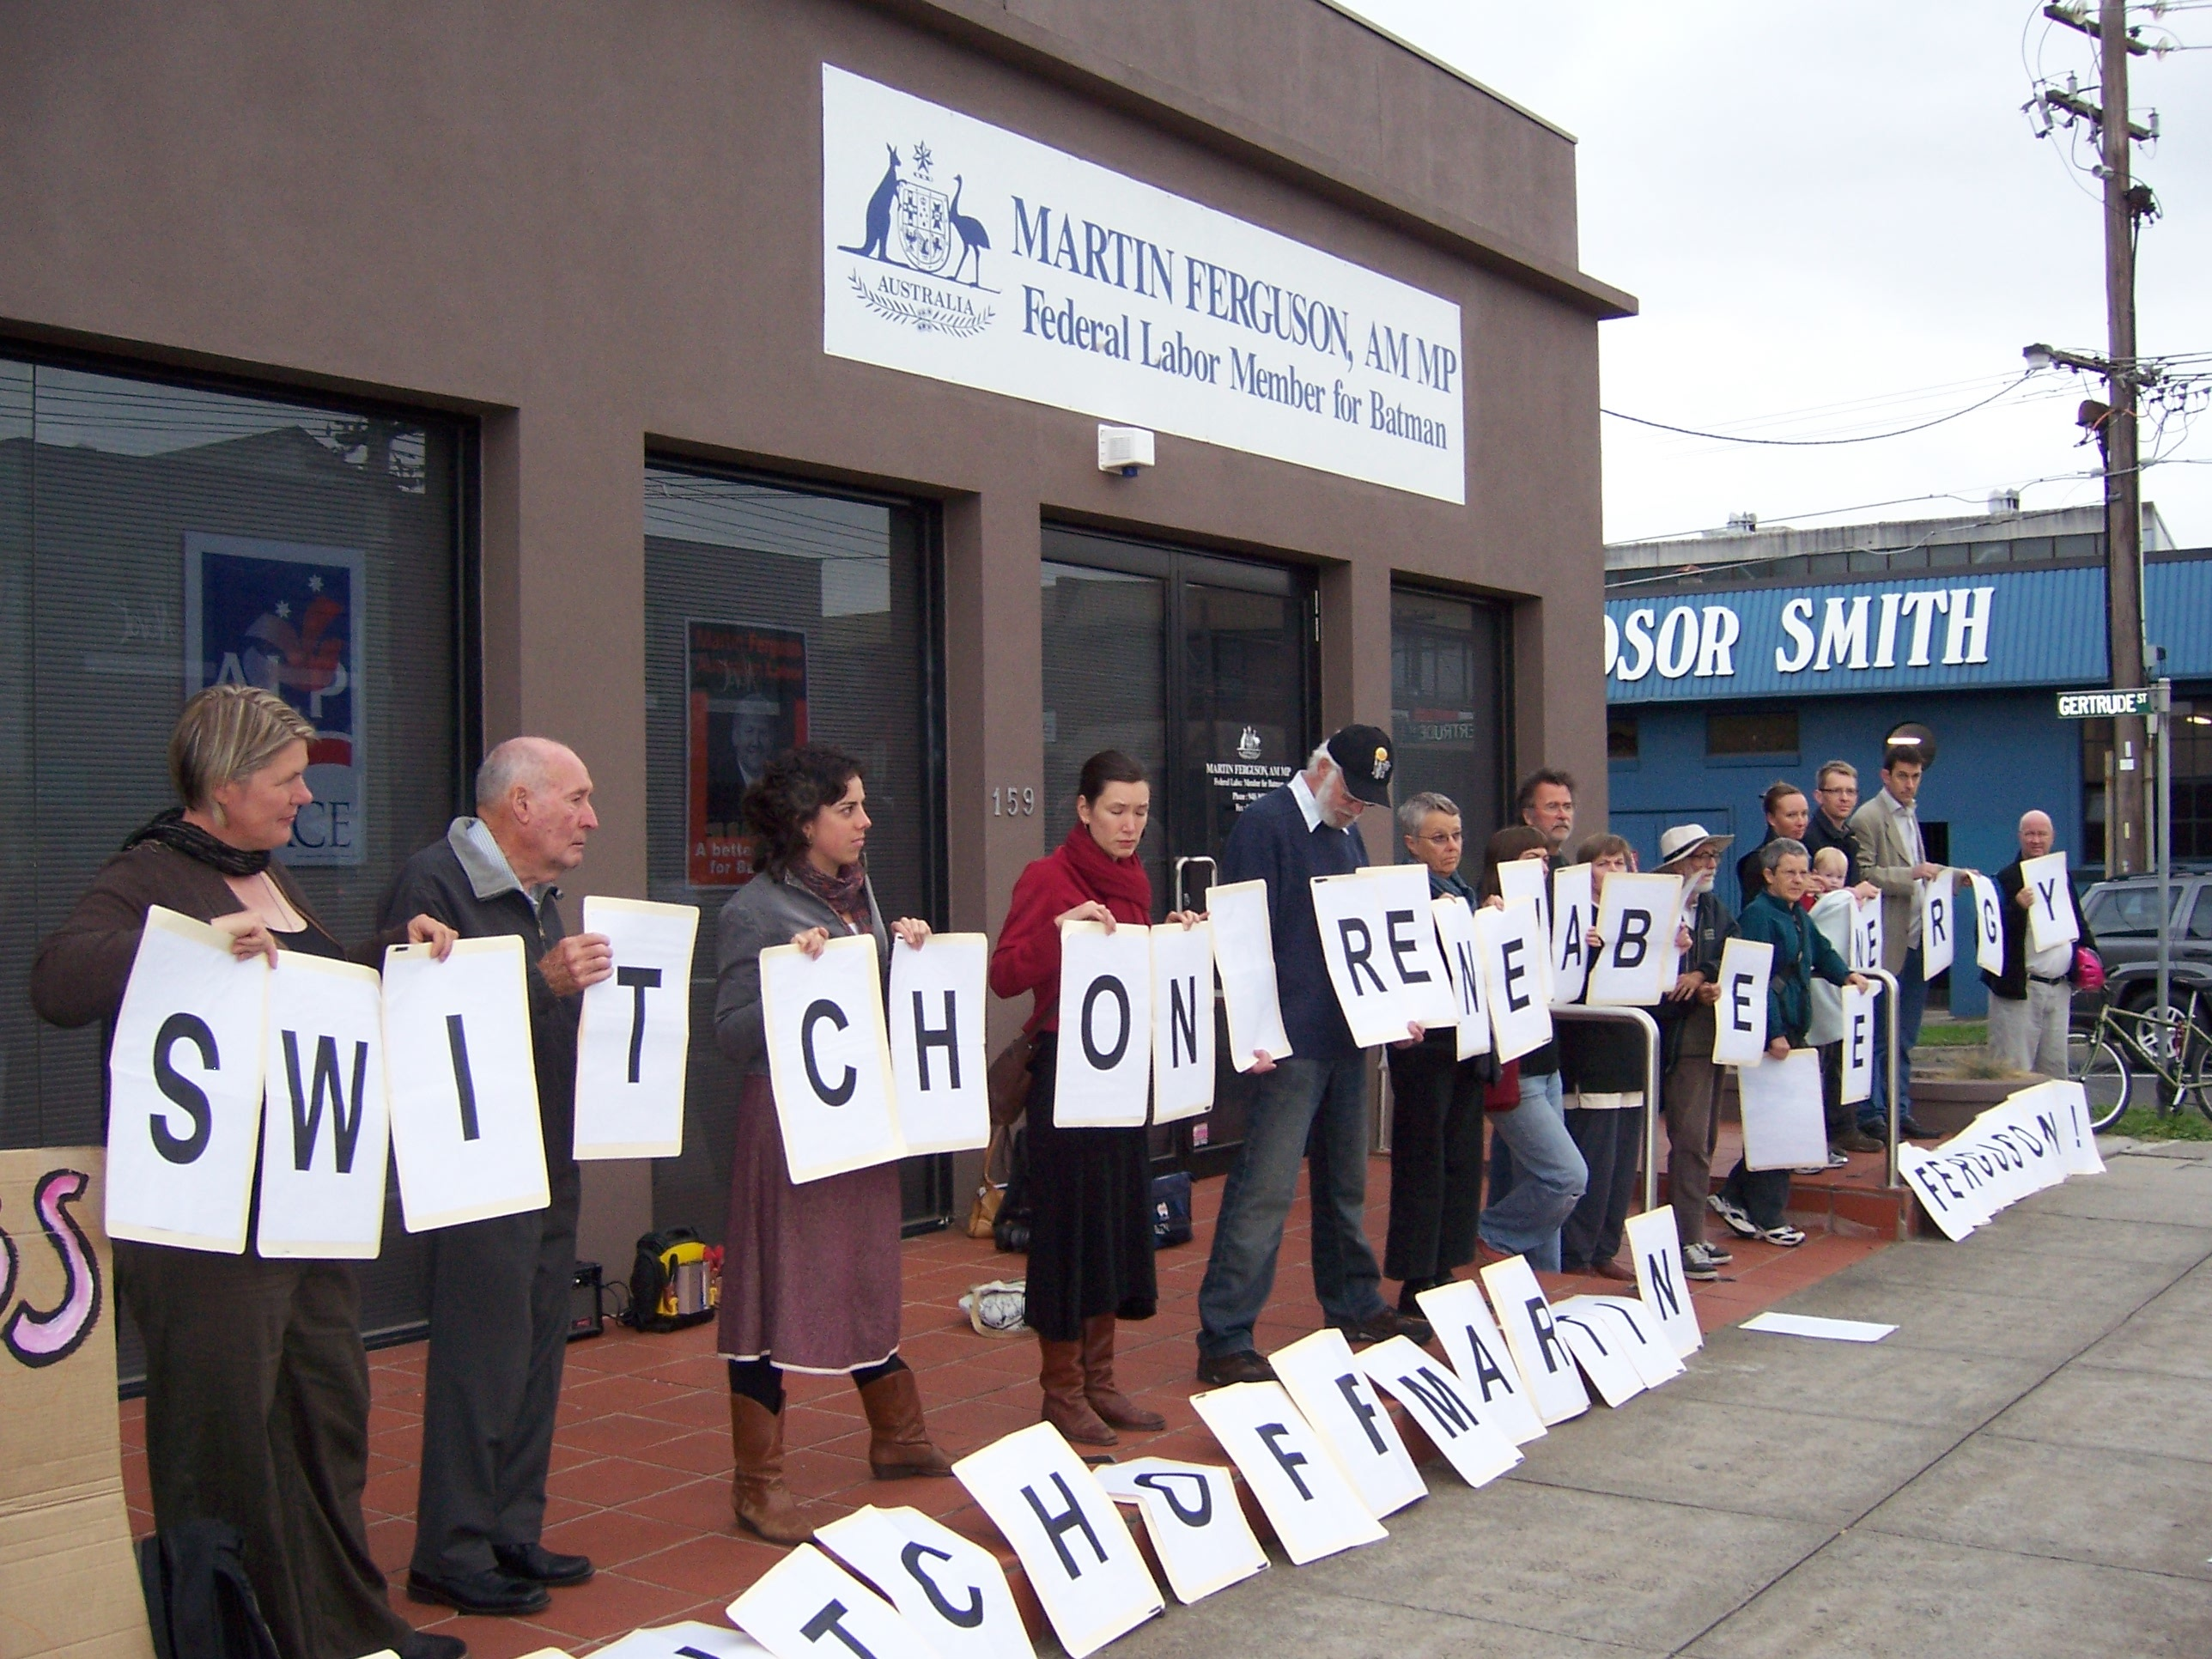 Community climate activists outside the office of Martin Ferguson, Member for Batman